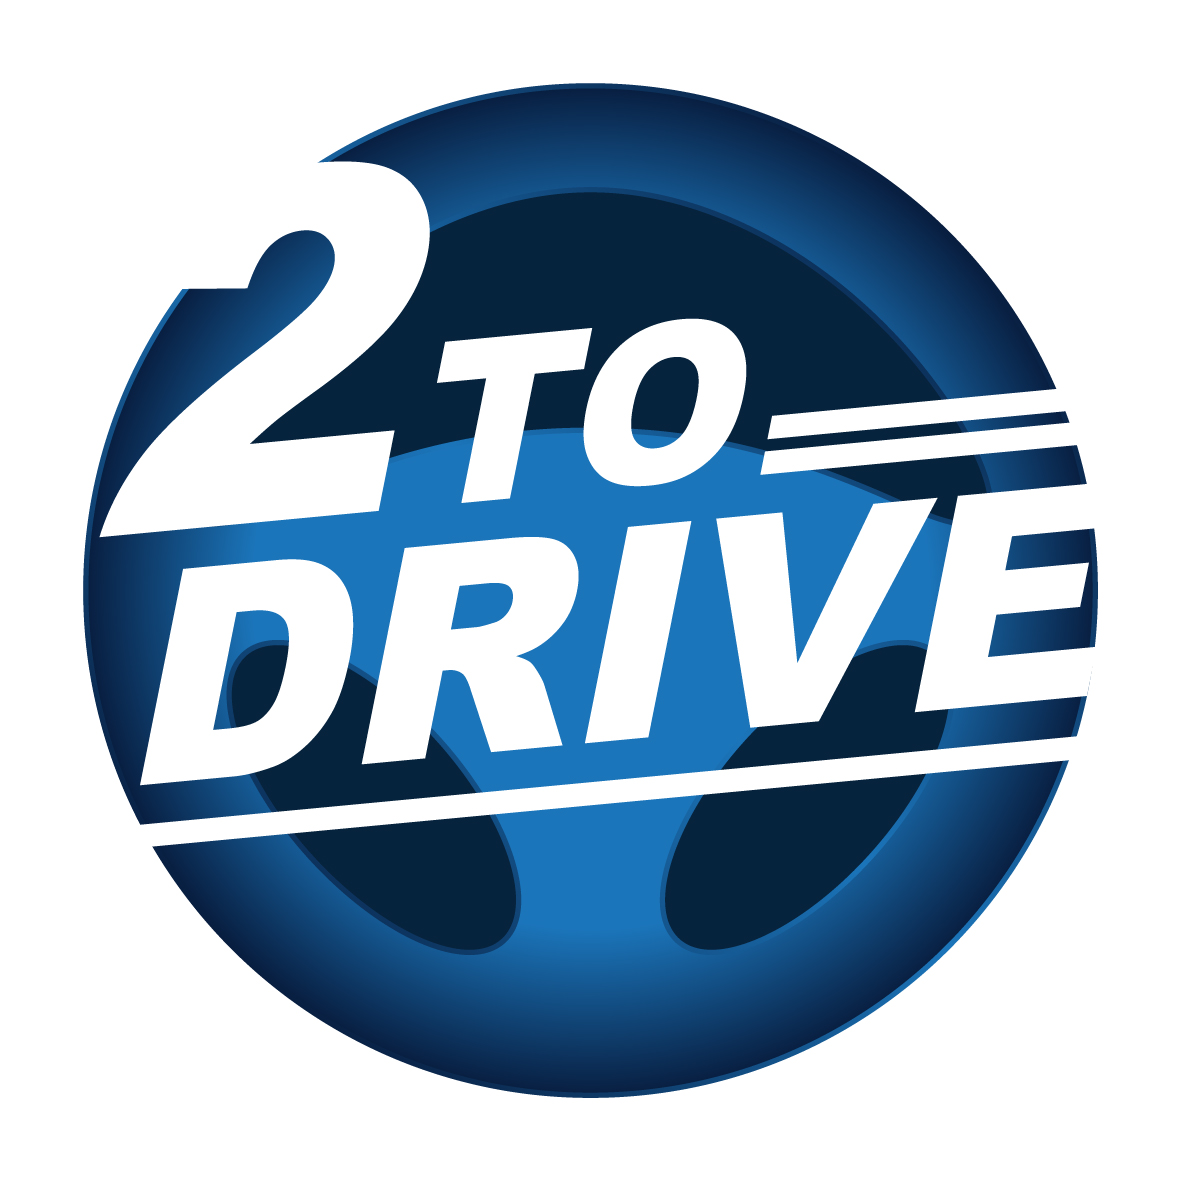 2 to Drive logo